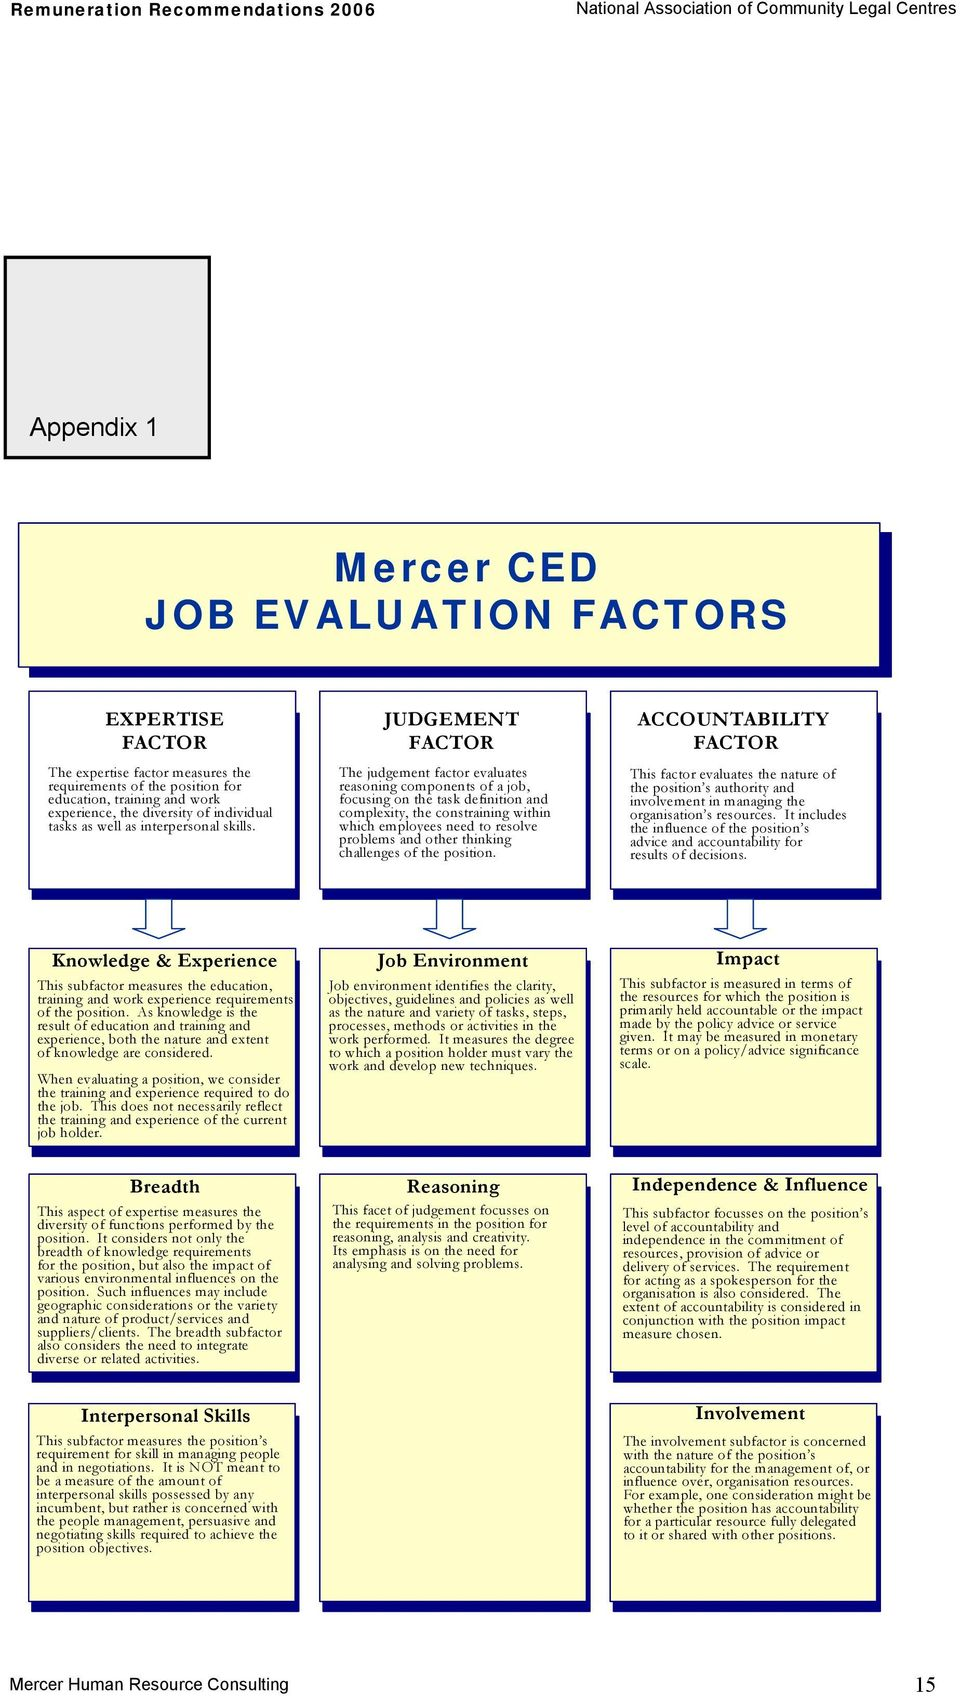 JUDGEMENT FACTOR The judgement factor evaluates reasoning components of a job, focusing on the task definition and complexity, the constraining within which employees need to resolve problems and